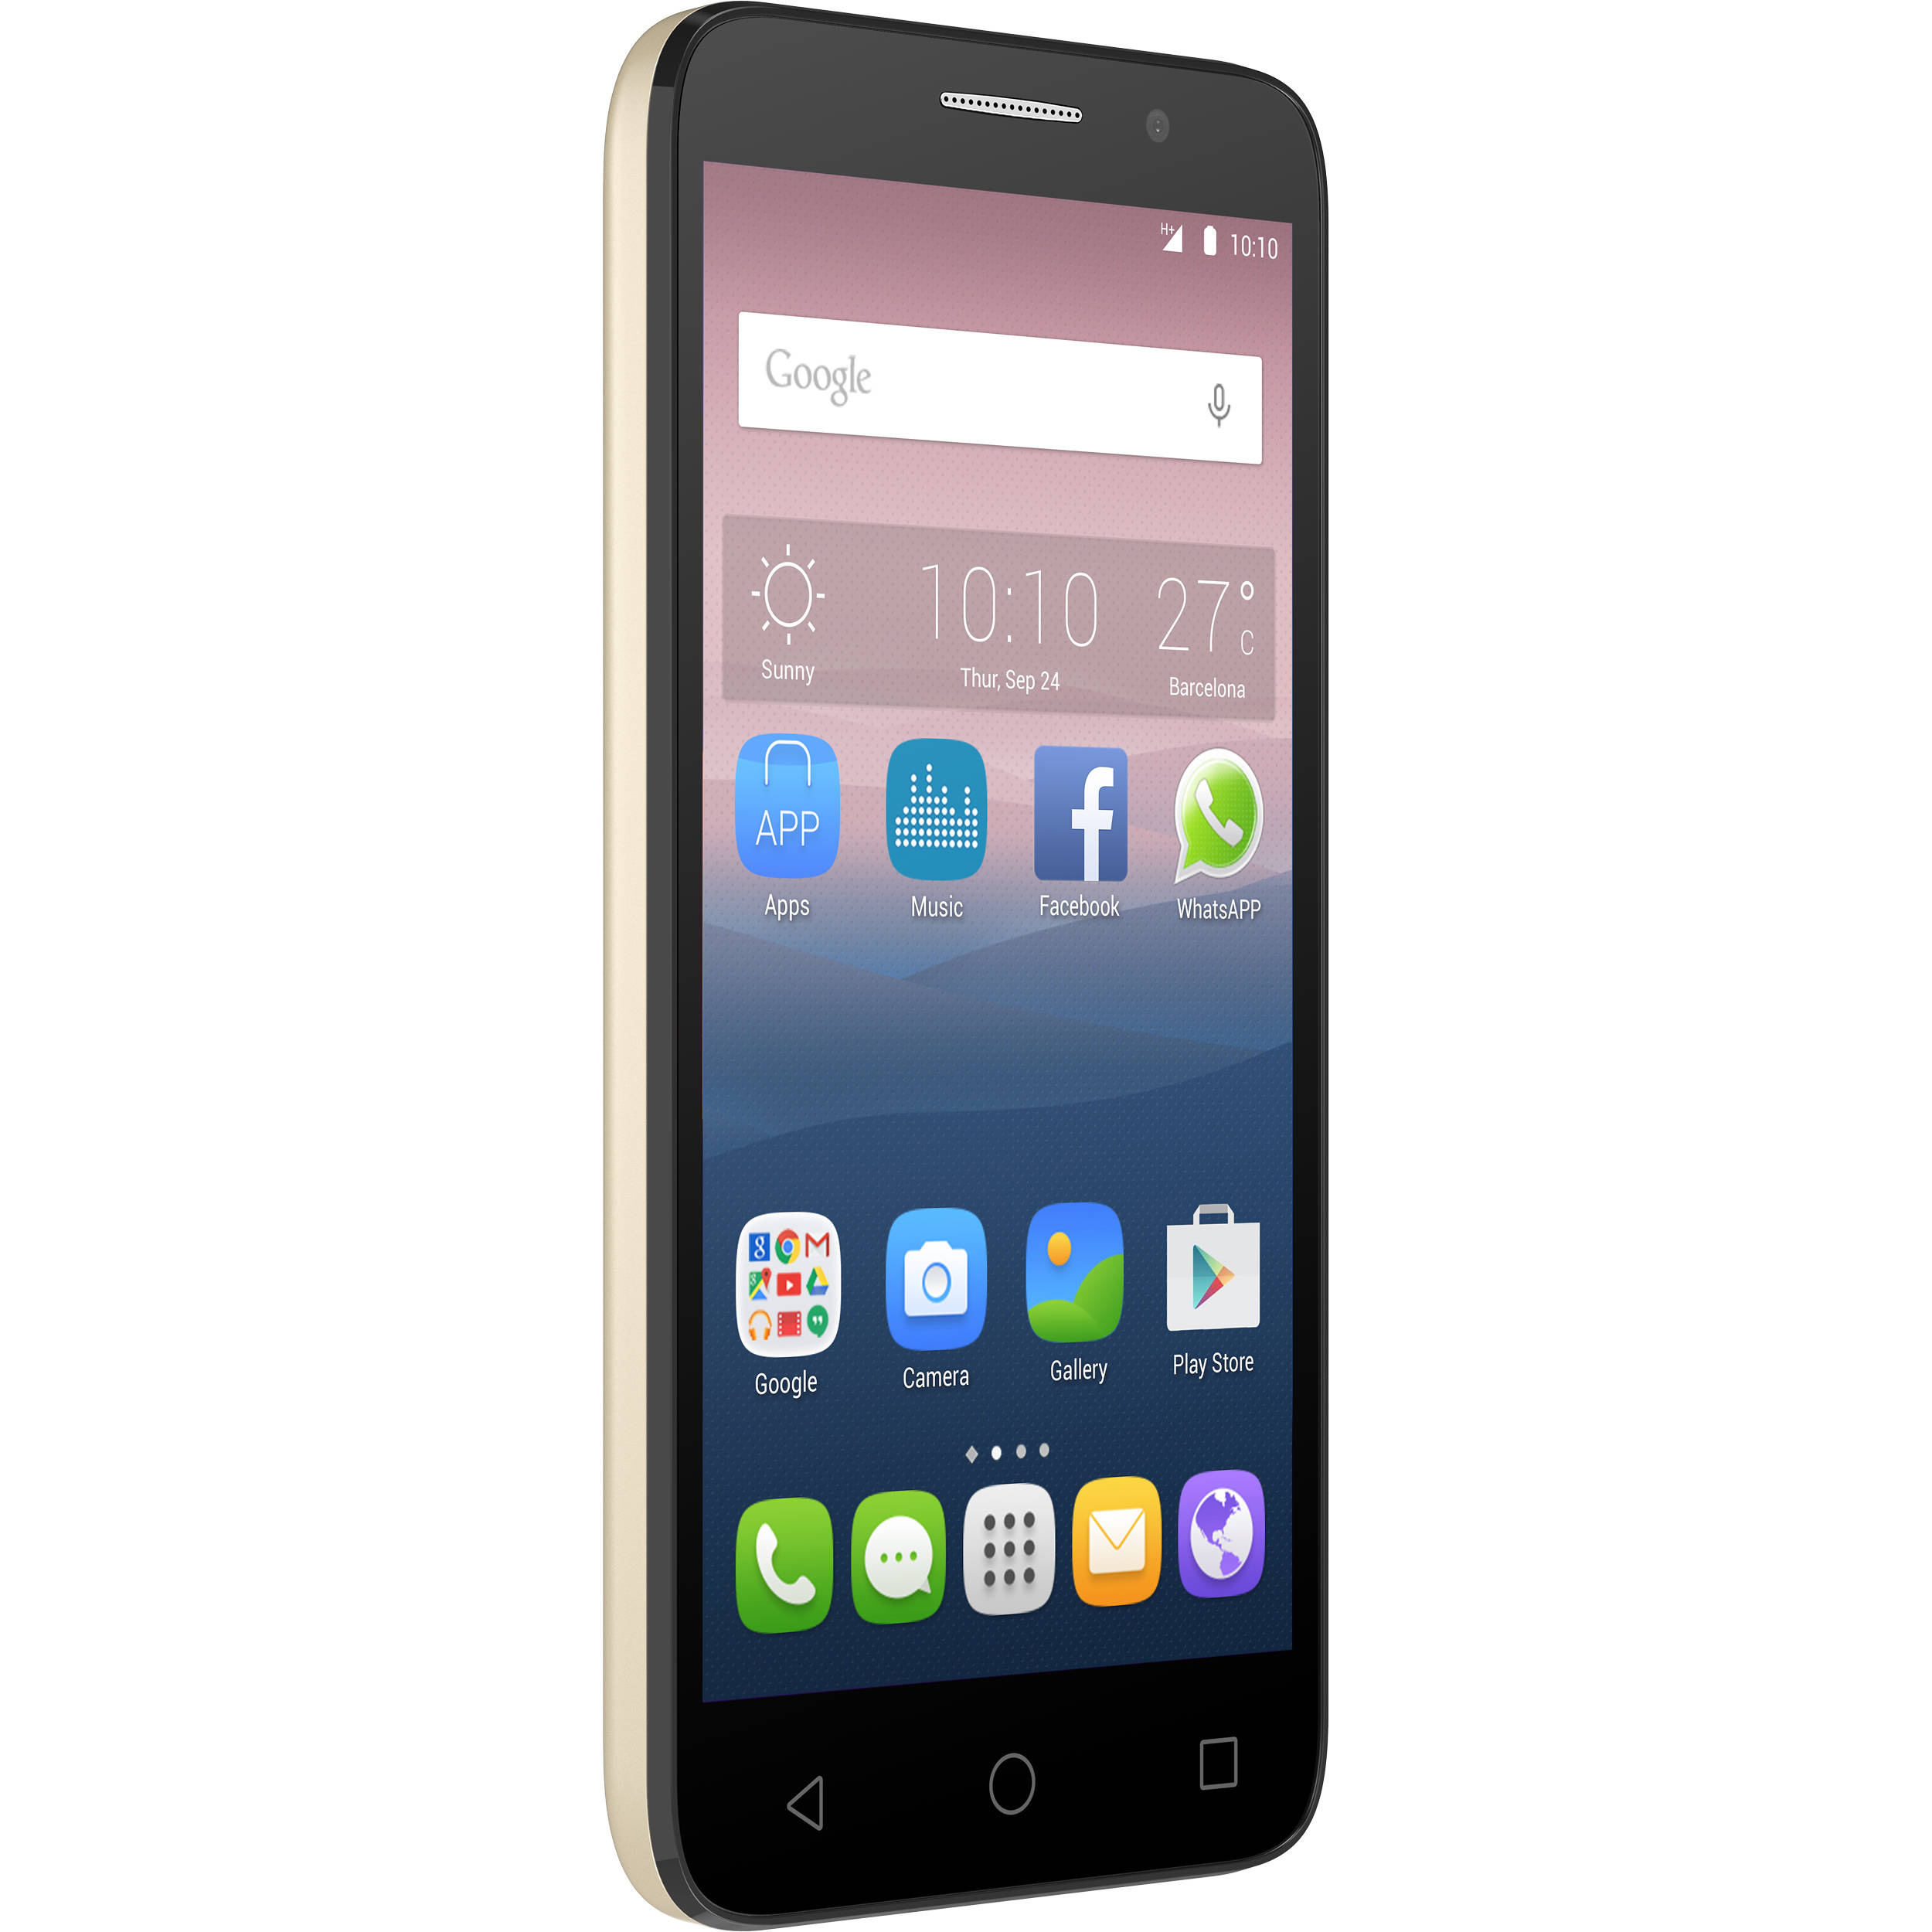 Root and Install TWRP Recovery on Alcatel OneTouch Pop 3 (5) (5065D), How to Root Alcatel OneTouch Pop 3 (5) (5065D), Install TWRP Recovery on Alcatel OneTouch Pop 3 (5) (5065D), Root Alcatel OneTouch Pop 3 (5) (5065D) Using supersu